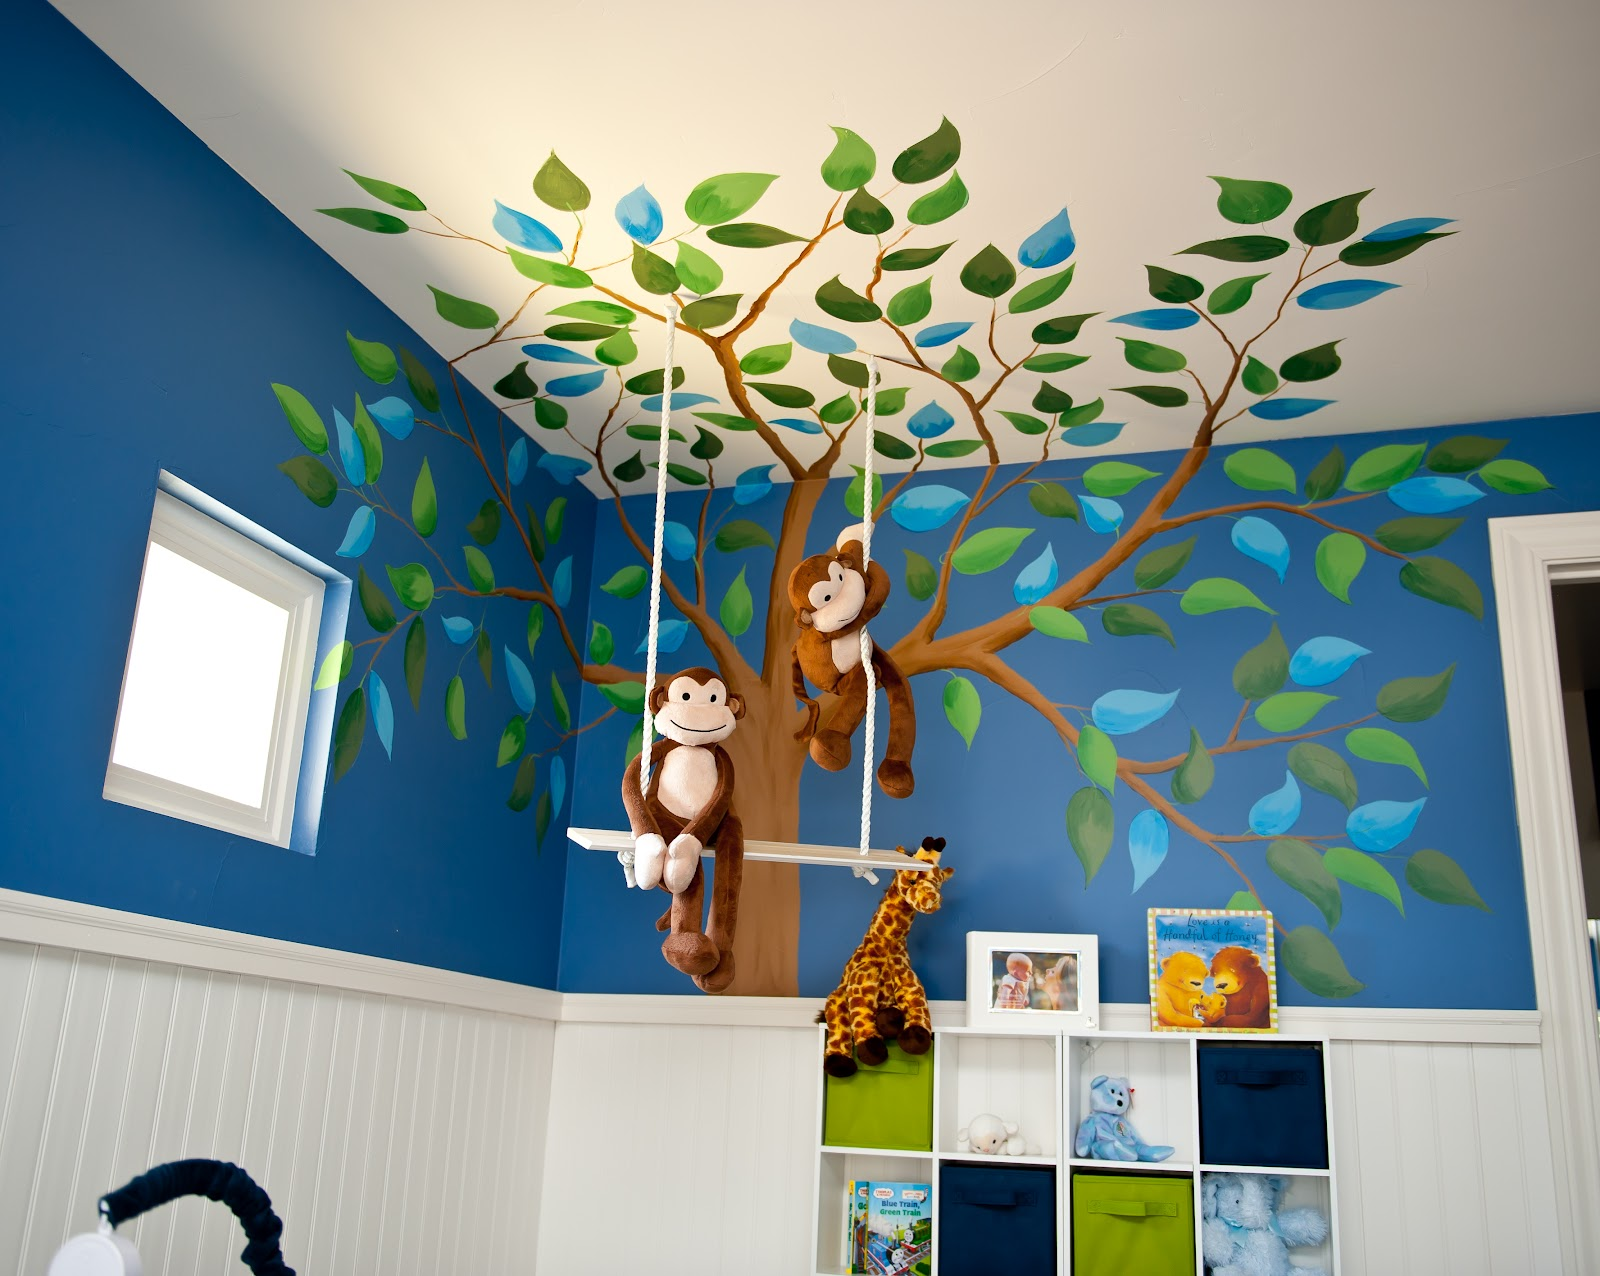 Monkey business nursery design dazzle for Decoracion de dormitorios para ninos